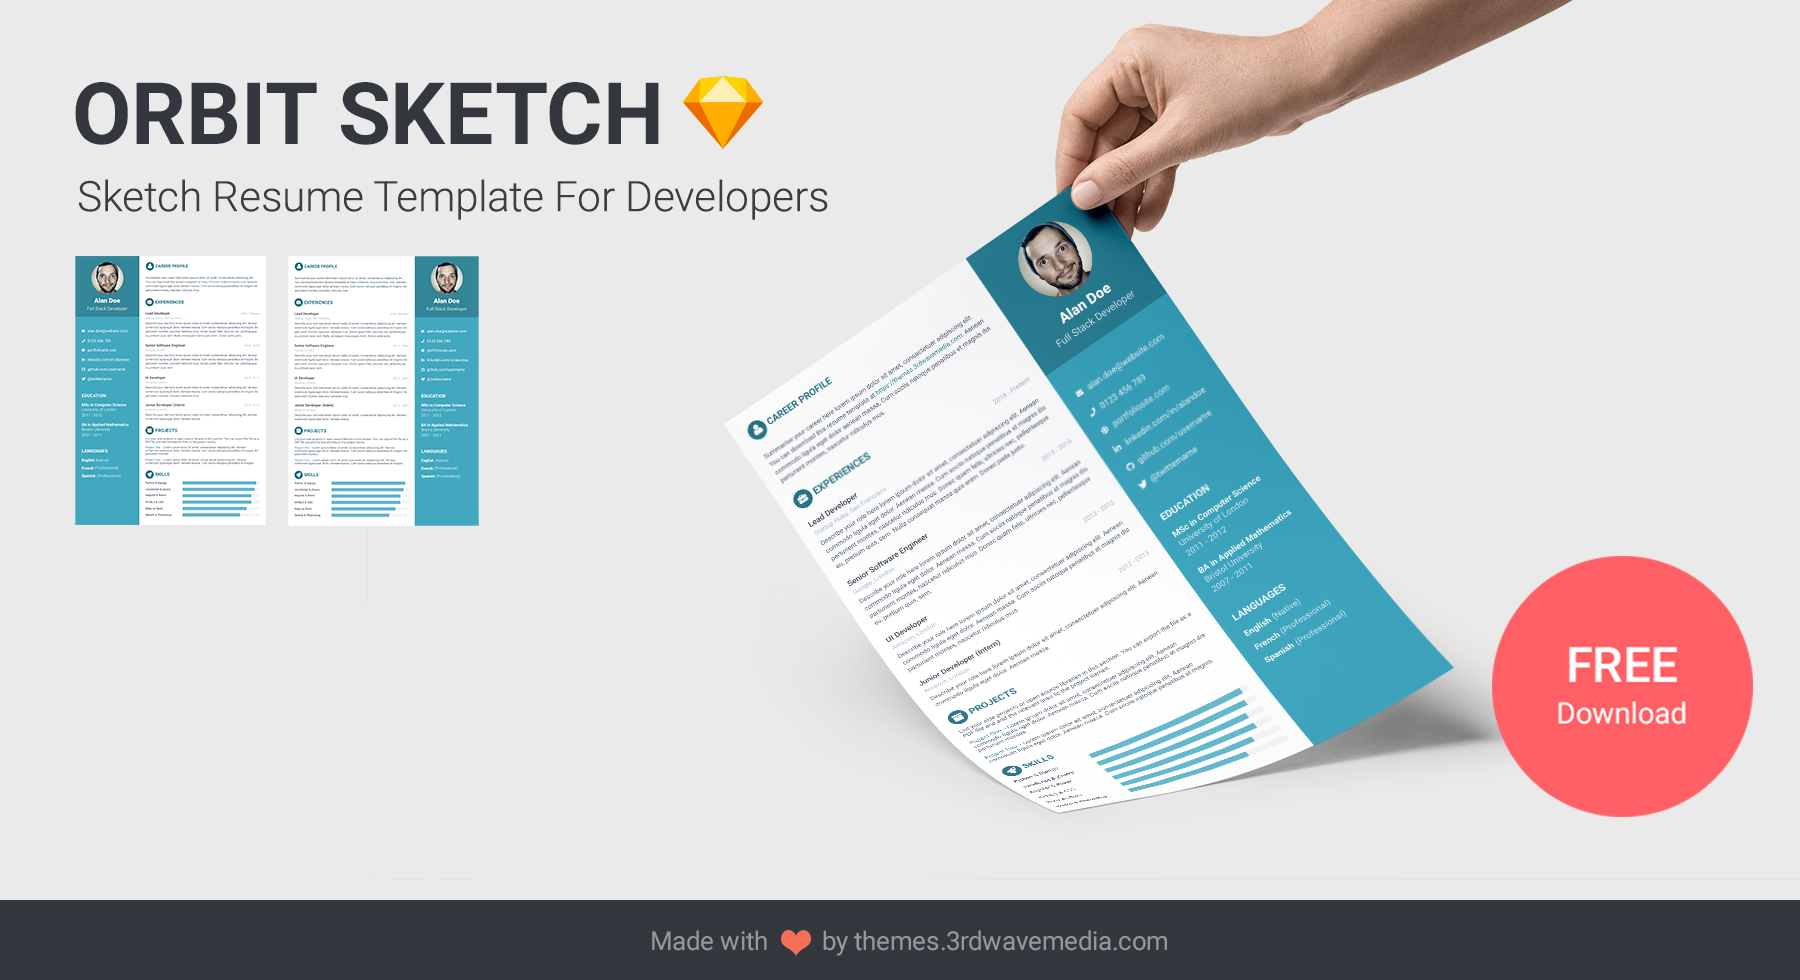 Sketch Resume Template for Developers